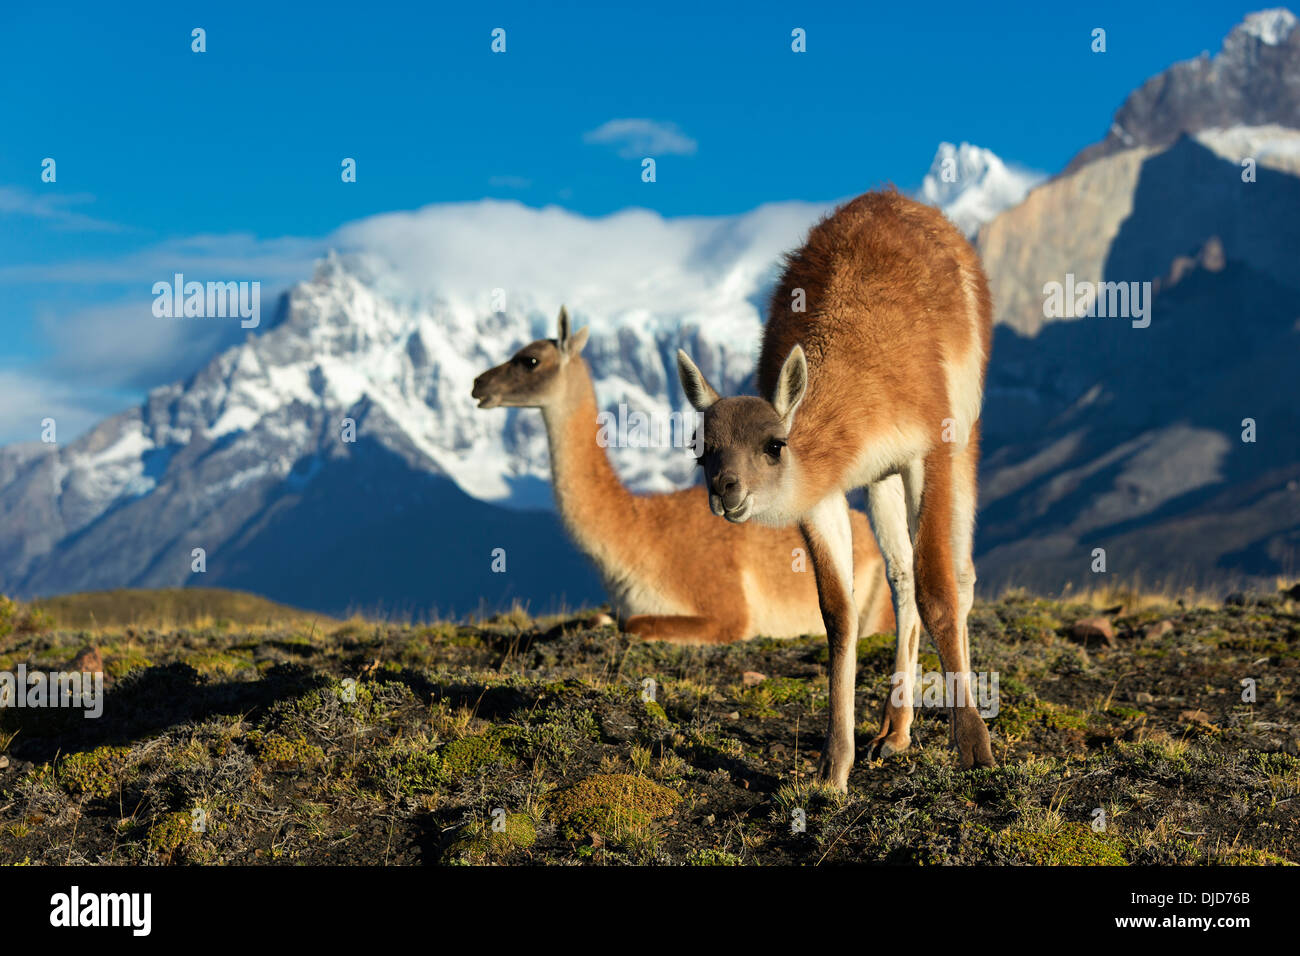 Two Guanacos(Lama guanicoe) on the hillside with Torres del Paine mountains in the background.Patagonia.Chile - Stock Image